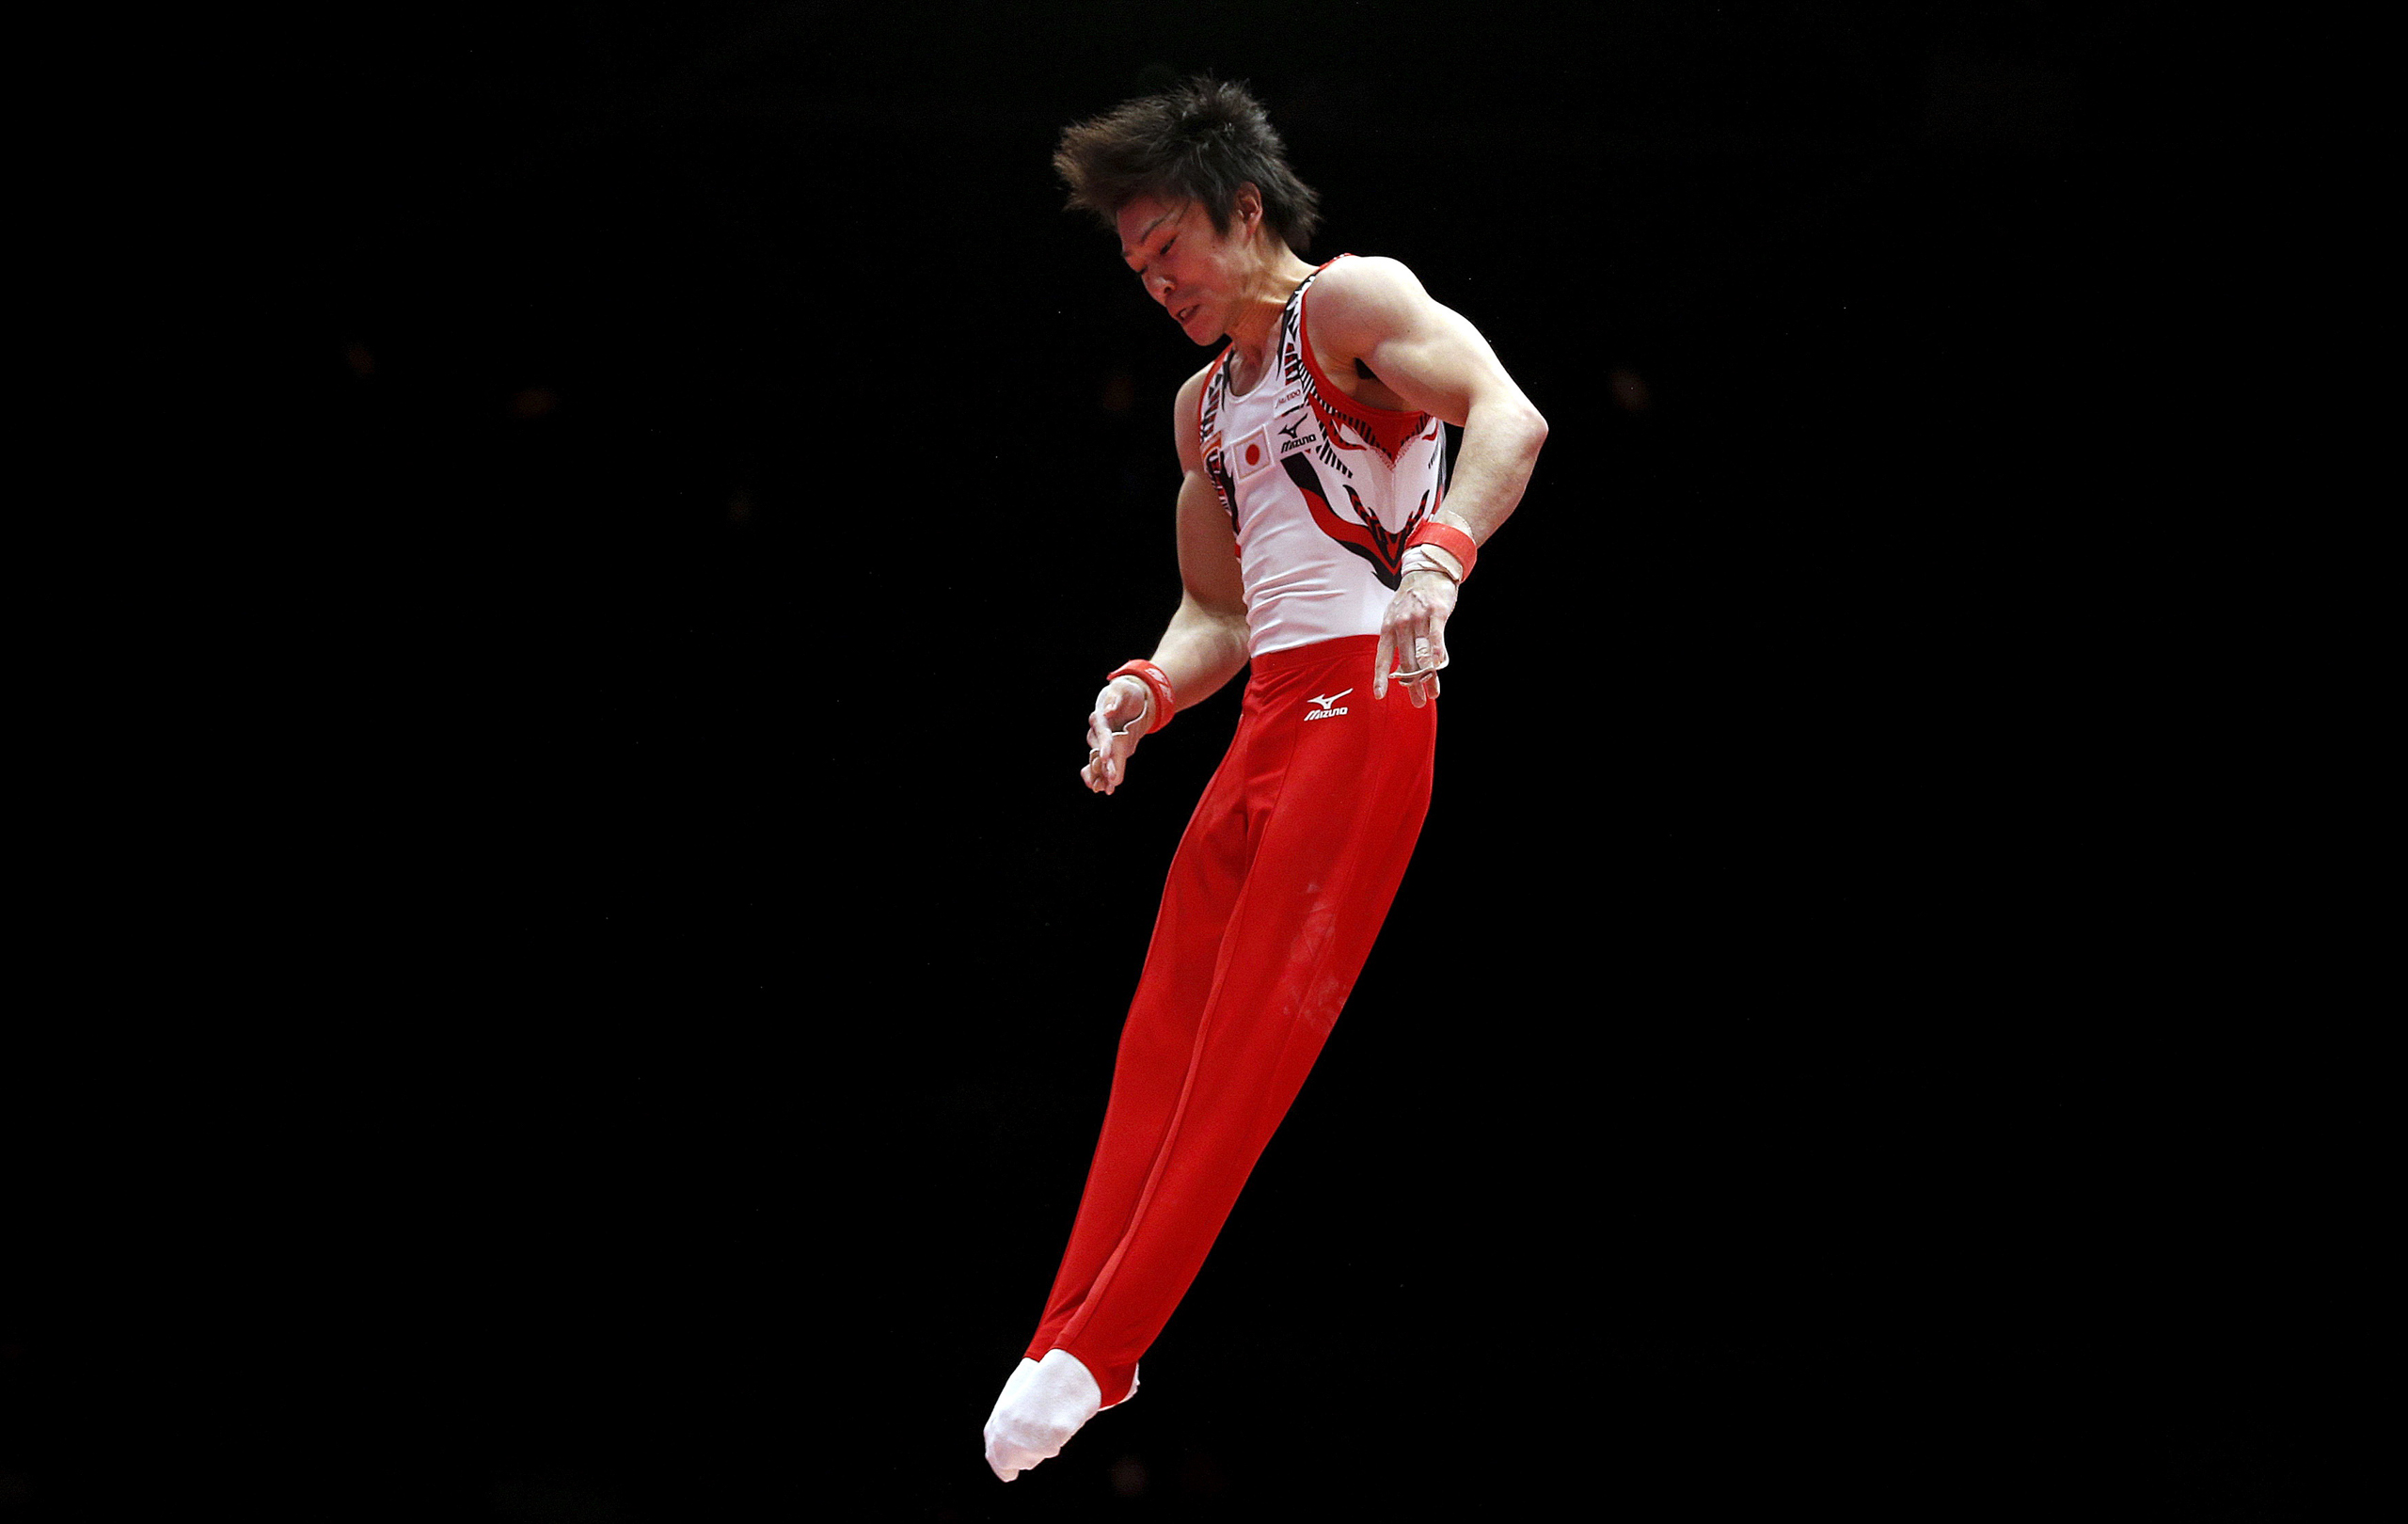 """<strong>Kohei Uchimura, Gymnastics, Japan</strong>Tokyo's summer heat has infiltrated the national training center, rendering bows a little sticky and dismounts a little slack. But Kohei Uchimura, the defending Olympic all-around title holder, lands his jumps with a panther poise that belies their caliber of diffi-culty. He does not appear to sweat.                                   Uchimura—who boasts six consecutive all-around world titles, double that of any other tumbler in history—is quite possibly the greatest male gymnast of all time. """"With today's scoring,"""" he says, """"if you don't move like a robot or a machine, you won't get the points.""""                                   But Uchimura also brings artistry to accuracy. The son of two gymnasts and brother to another, his destiny was set at the age of 3, when he began tumbling at his parents' gym in the southern city of Nagasaki. Today at 27, he might seem geriatric in the callow world of gymnastics. Uchimura, though, considers himself to be at """"peak form"""" for Rio, where he hopes to not only defend his individual all-around title but also lead Team Japan past its Chinese rivals, who have dominated the past two Olympics. Not that Uchimura plans to bow out at Rio. After all, the next Summer Games are in Tokyo. —Hannah Beech"""